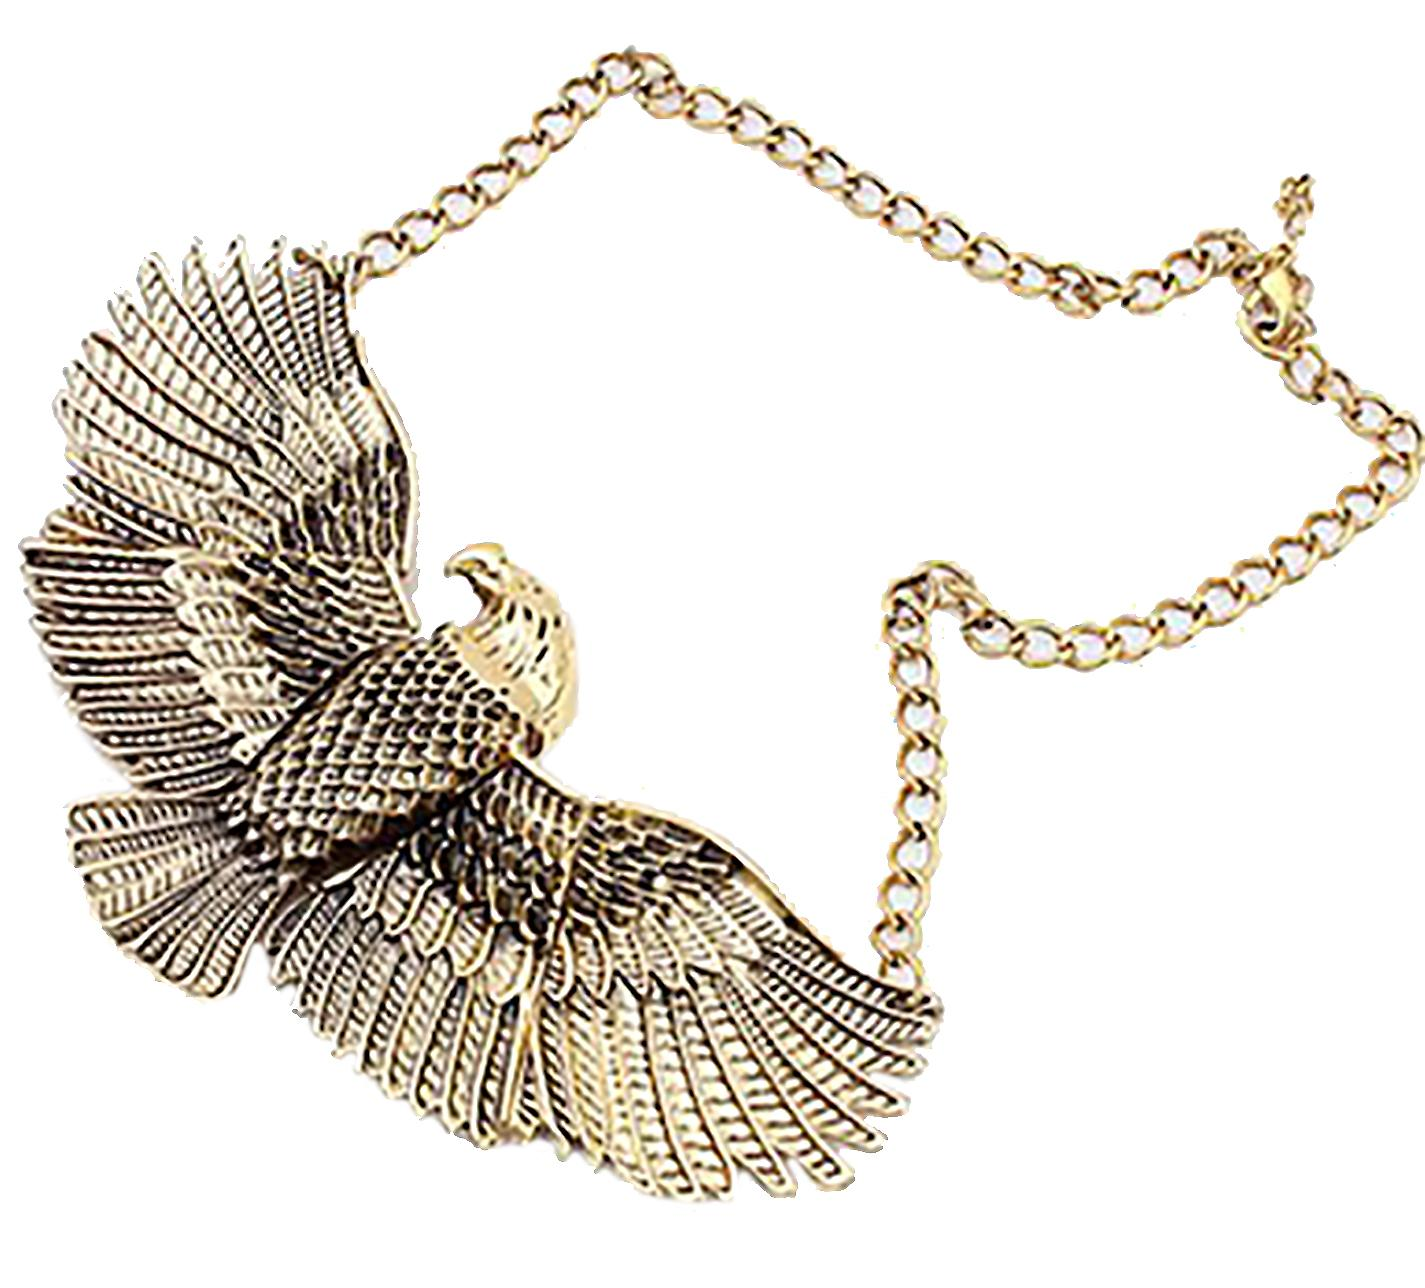 Waooh - Collier shaped Aket eagle